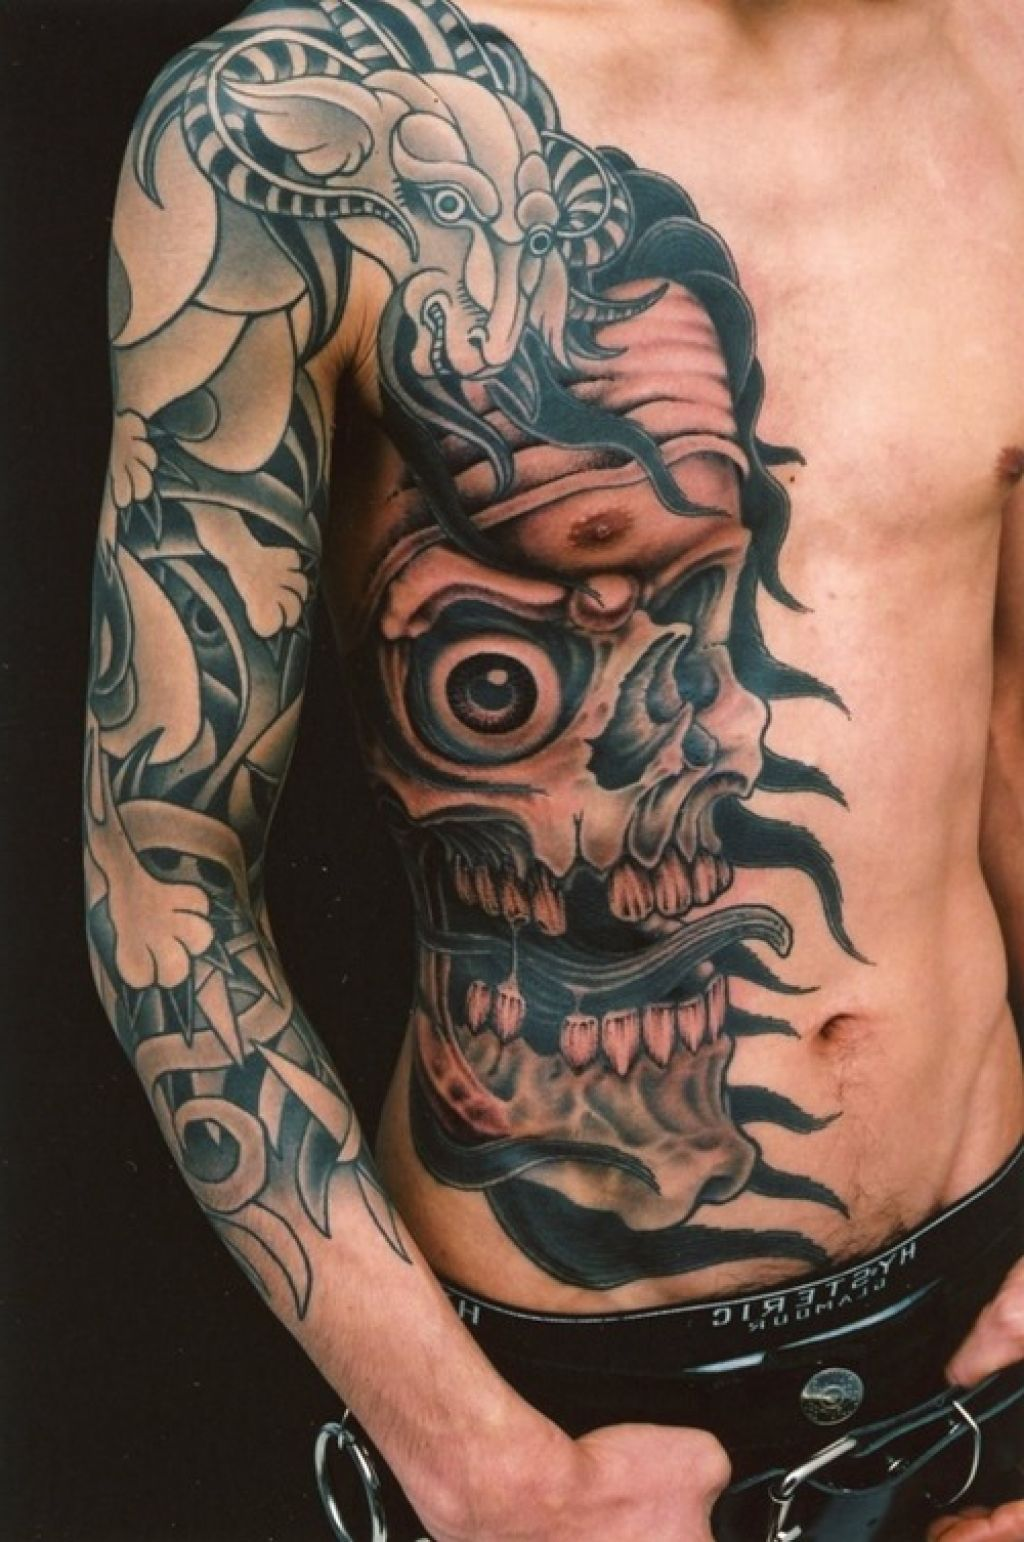 50 cool tattoo ideas for awesome inspiration shoulder tattoo tattoo designs and tattoo. Black Bedroom Furniture Sets. Home Design Ideas